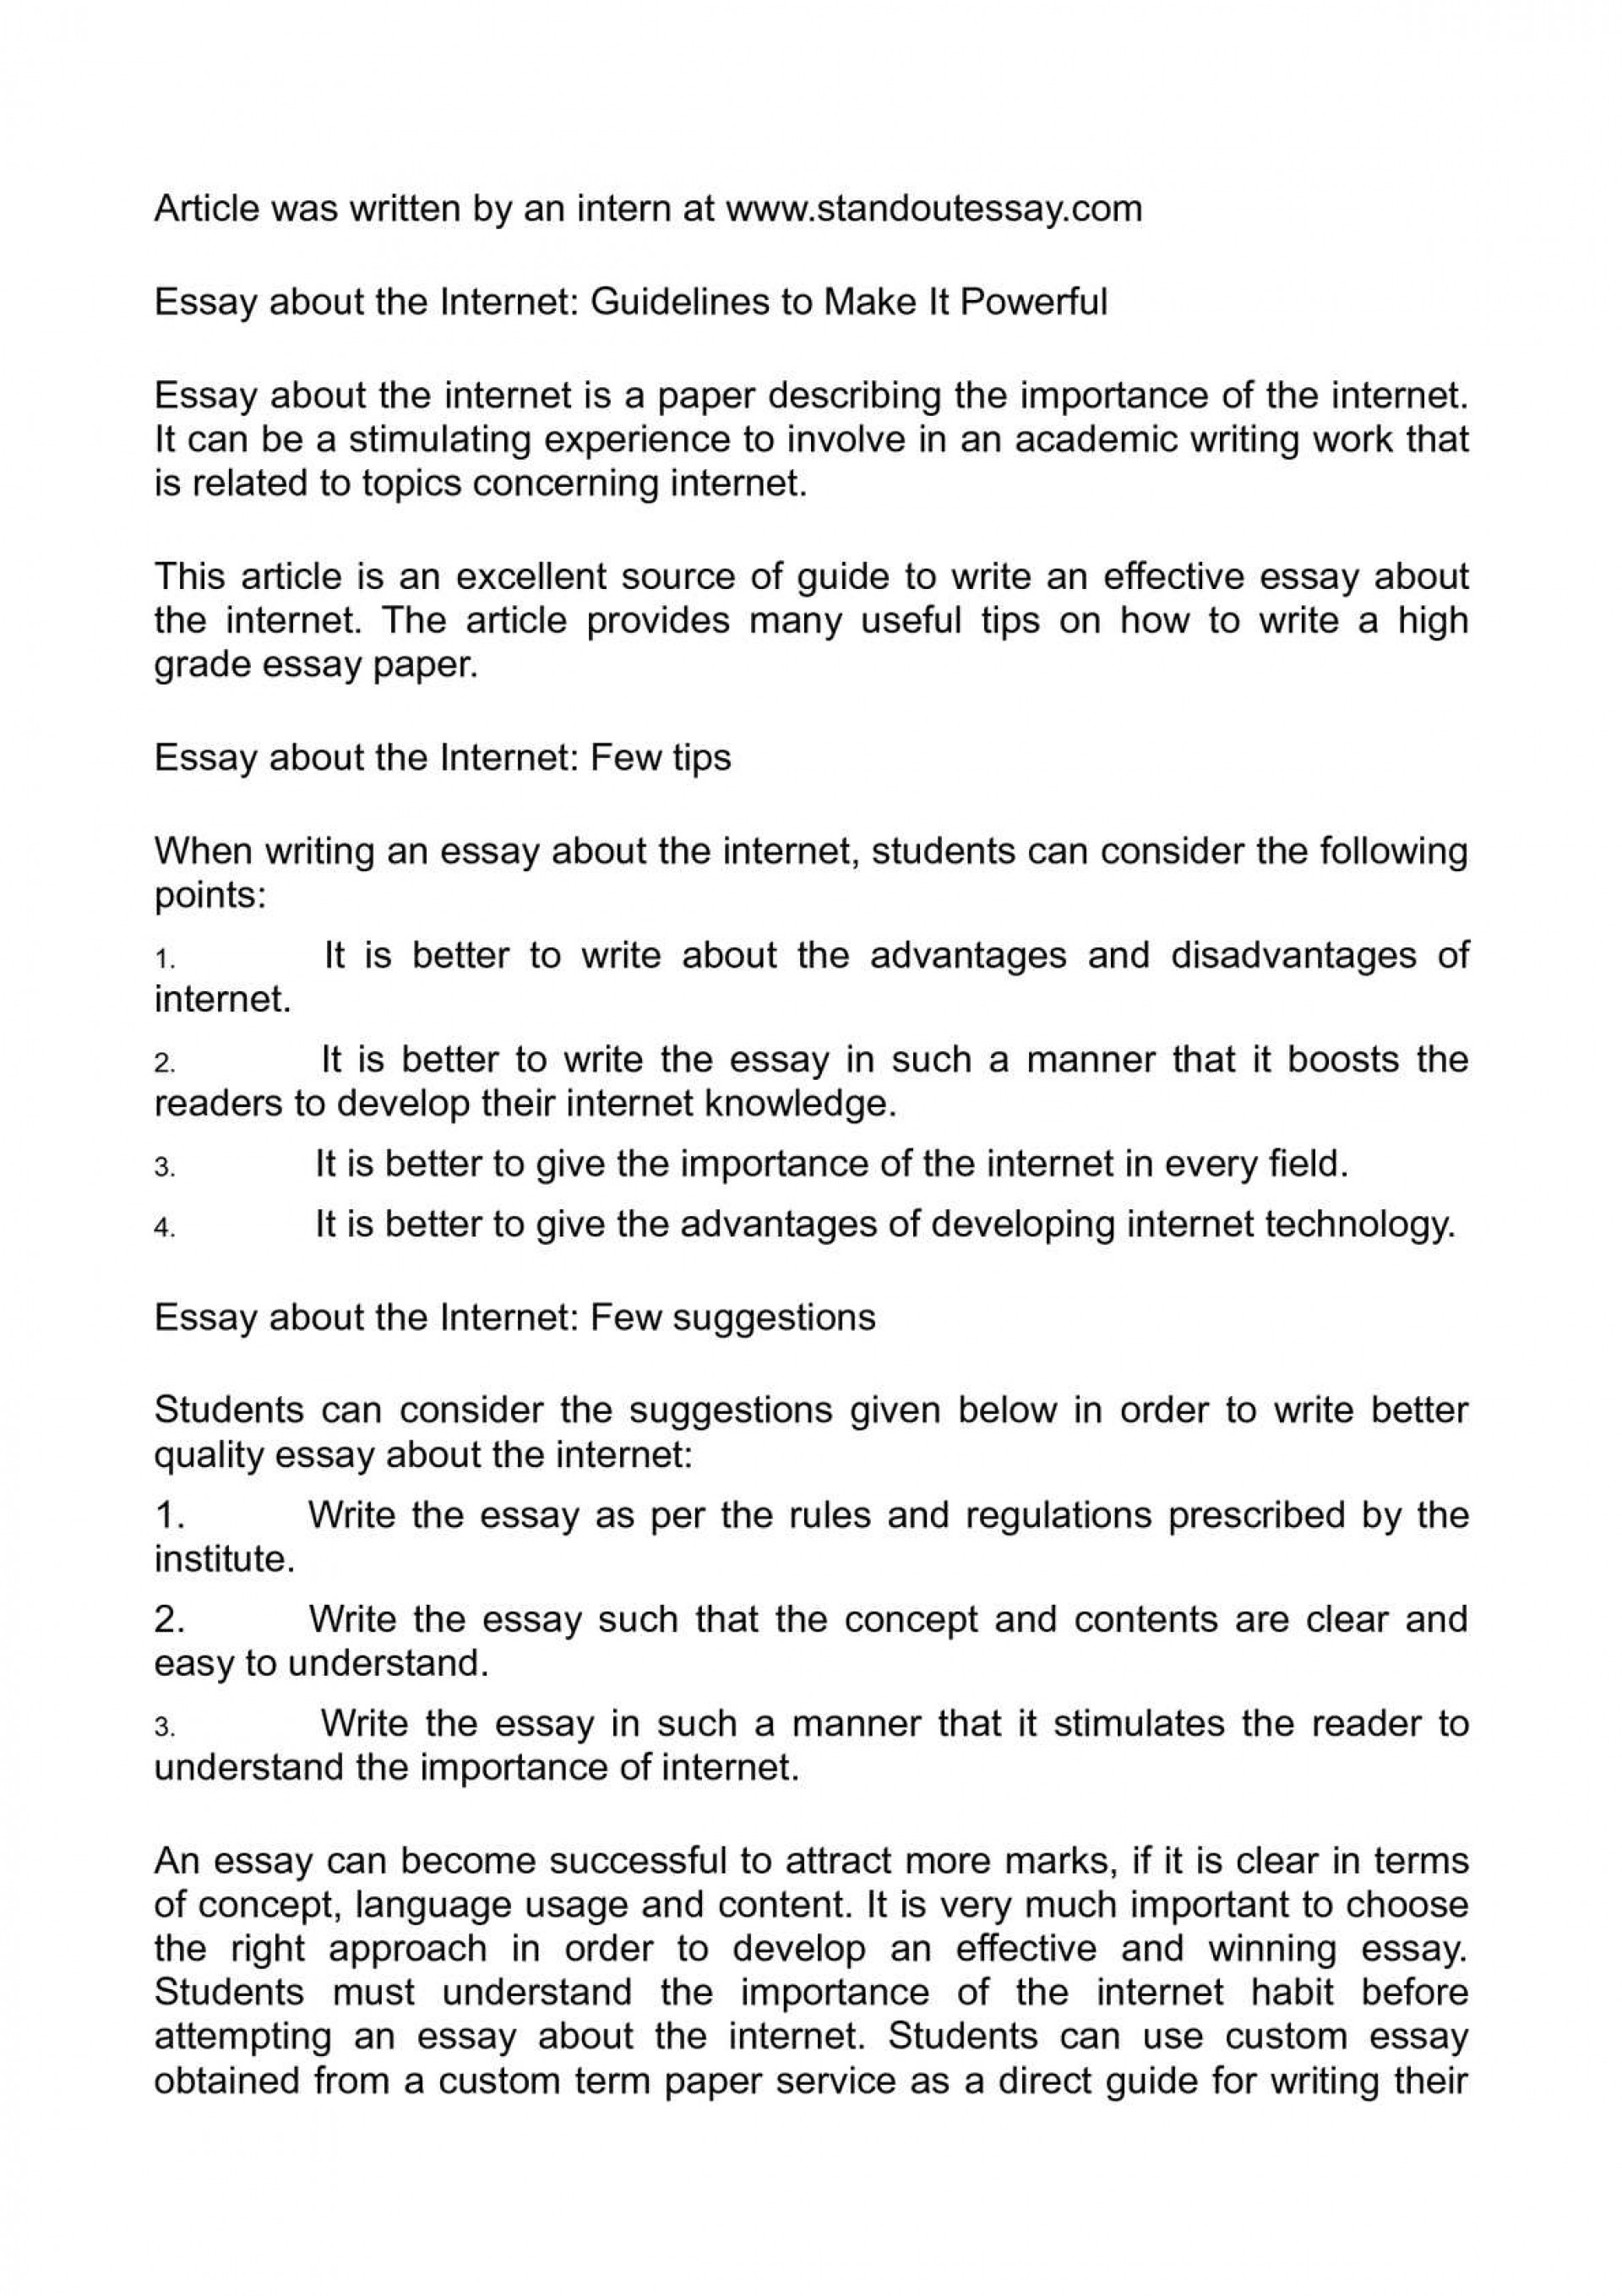 007 Internet Essay P1 Wondrous Privacy Introduction Censorship Topics Chatting In Urdu 1920